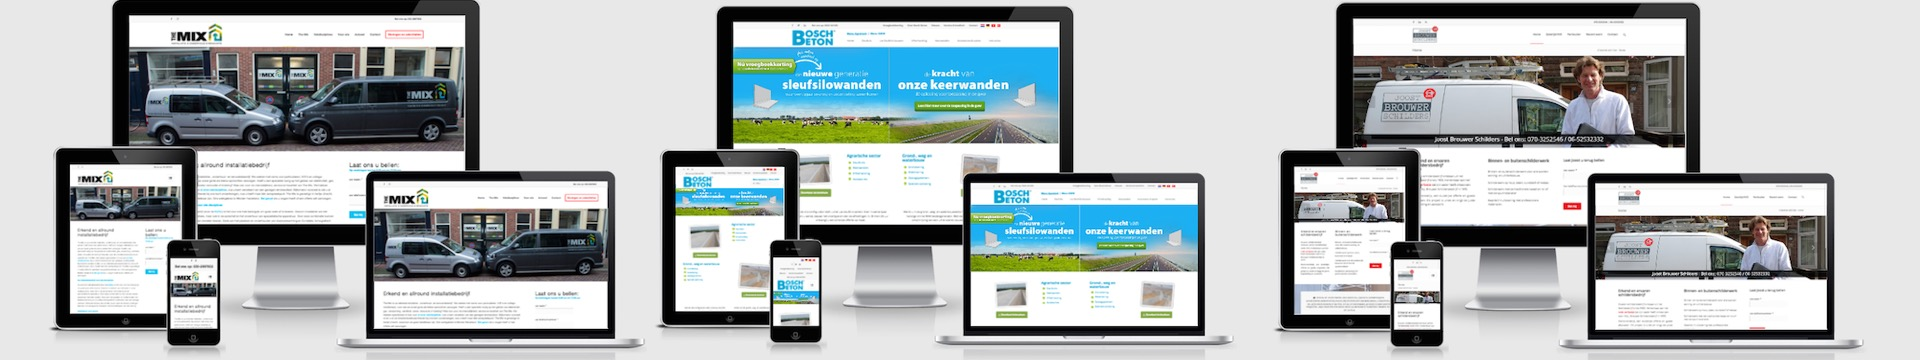 WordPress_Website_MegaExposure_Responsive